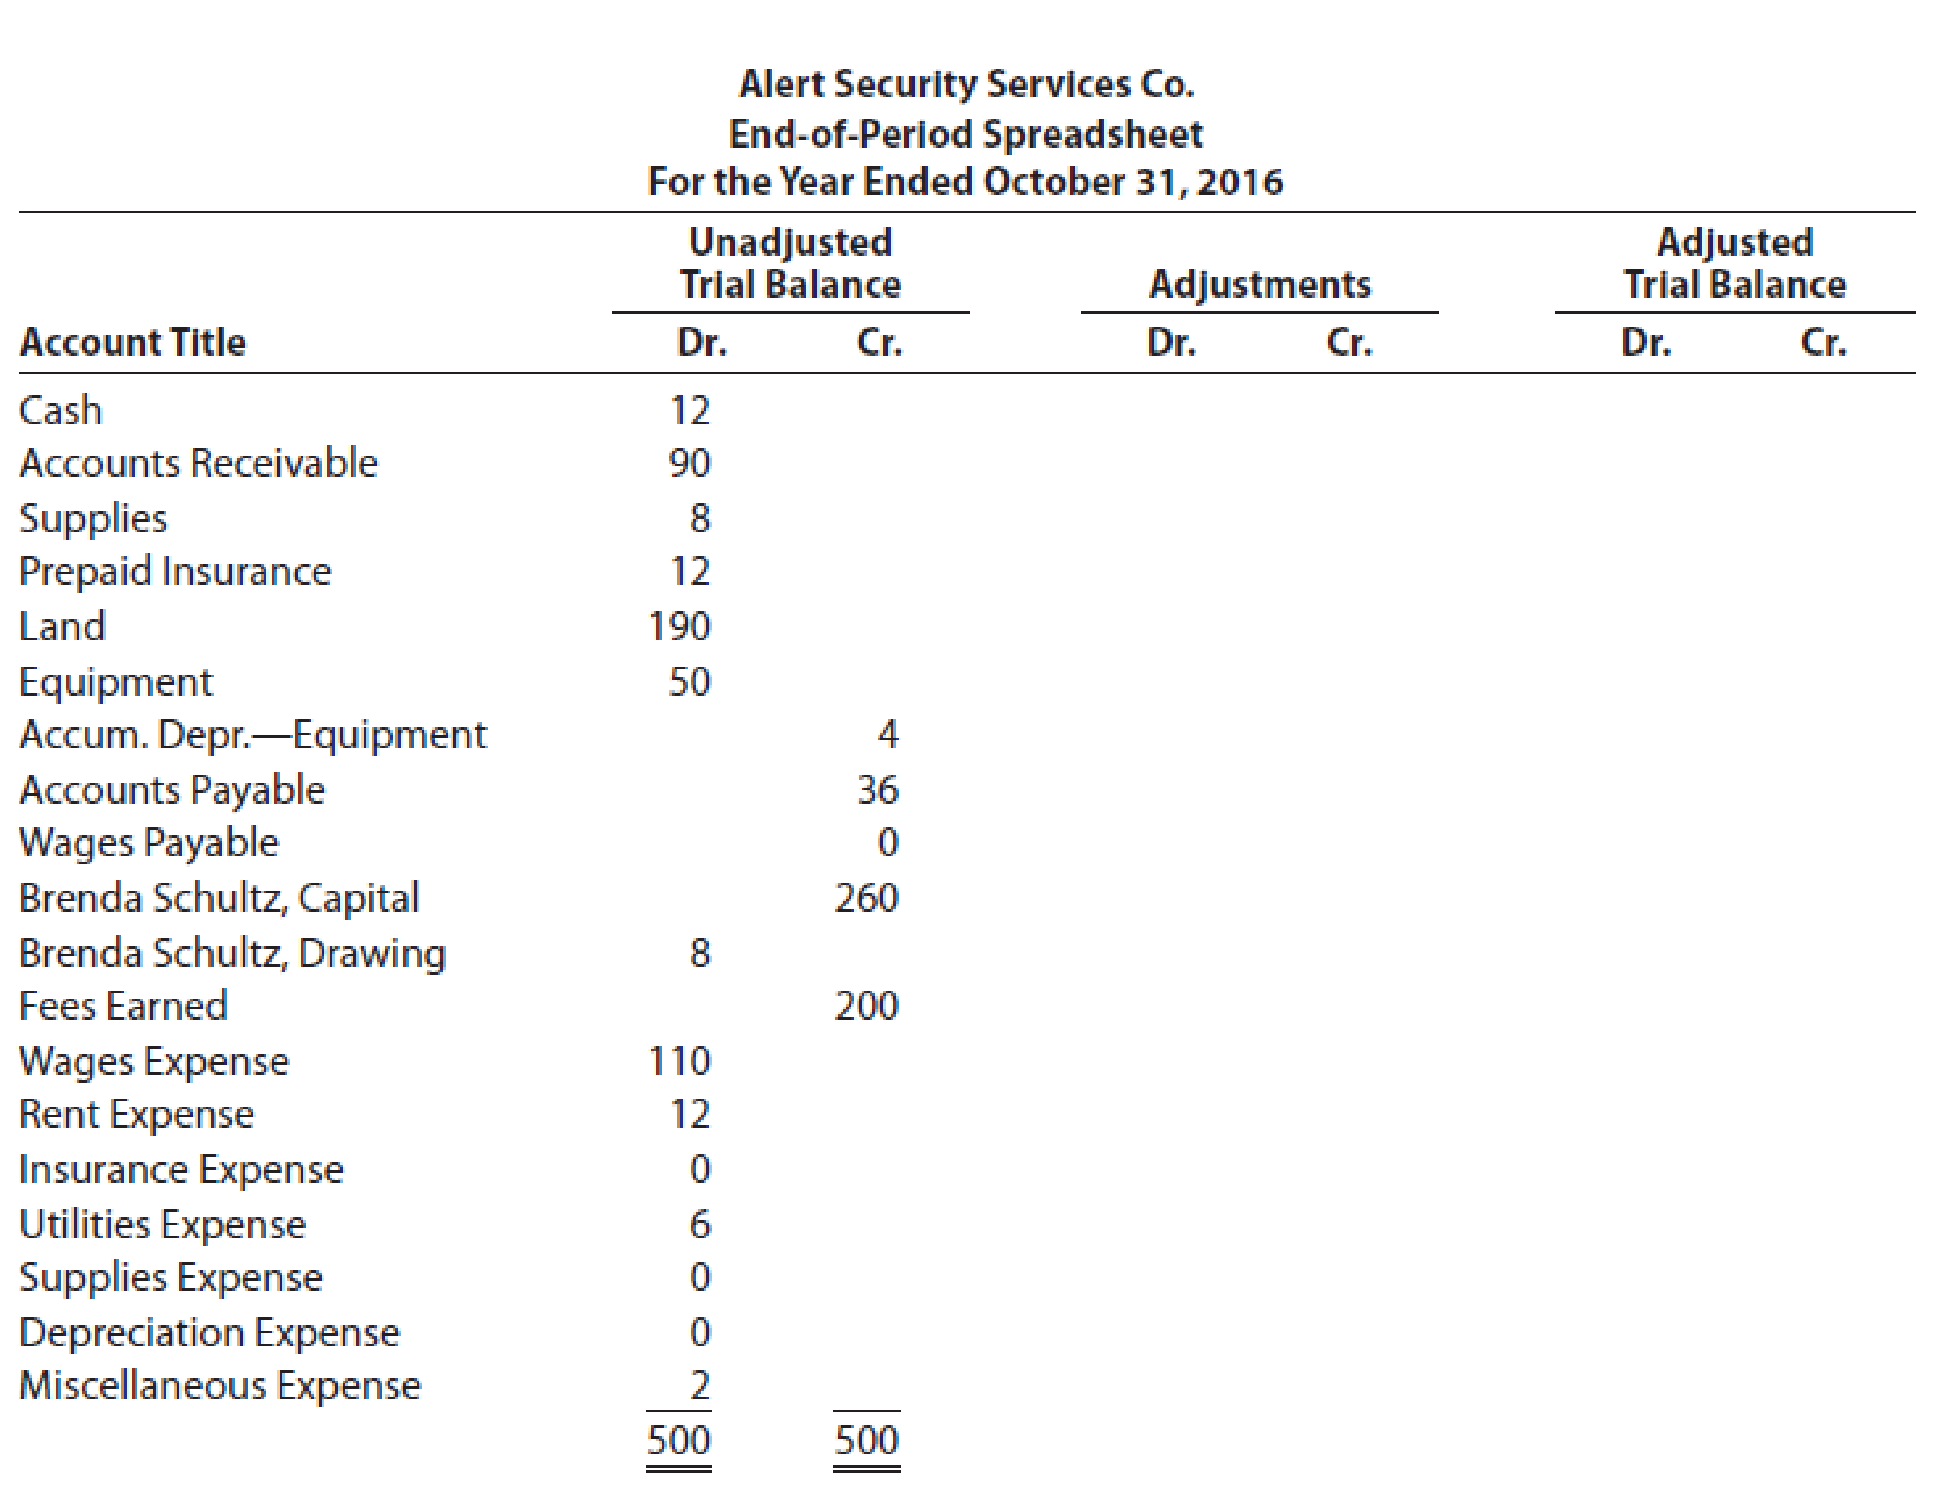 Chapter 4, Problem 24E, Alert Security Services Co. offers security services to business clients. The trial balance for